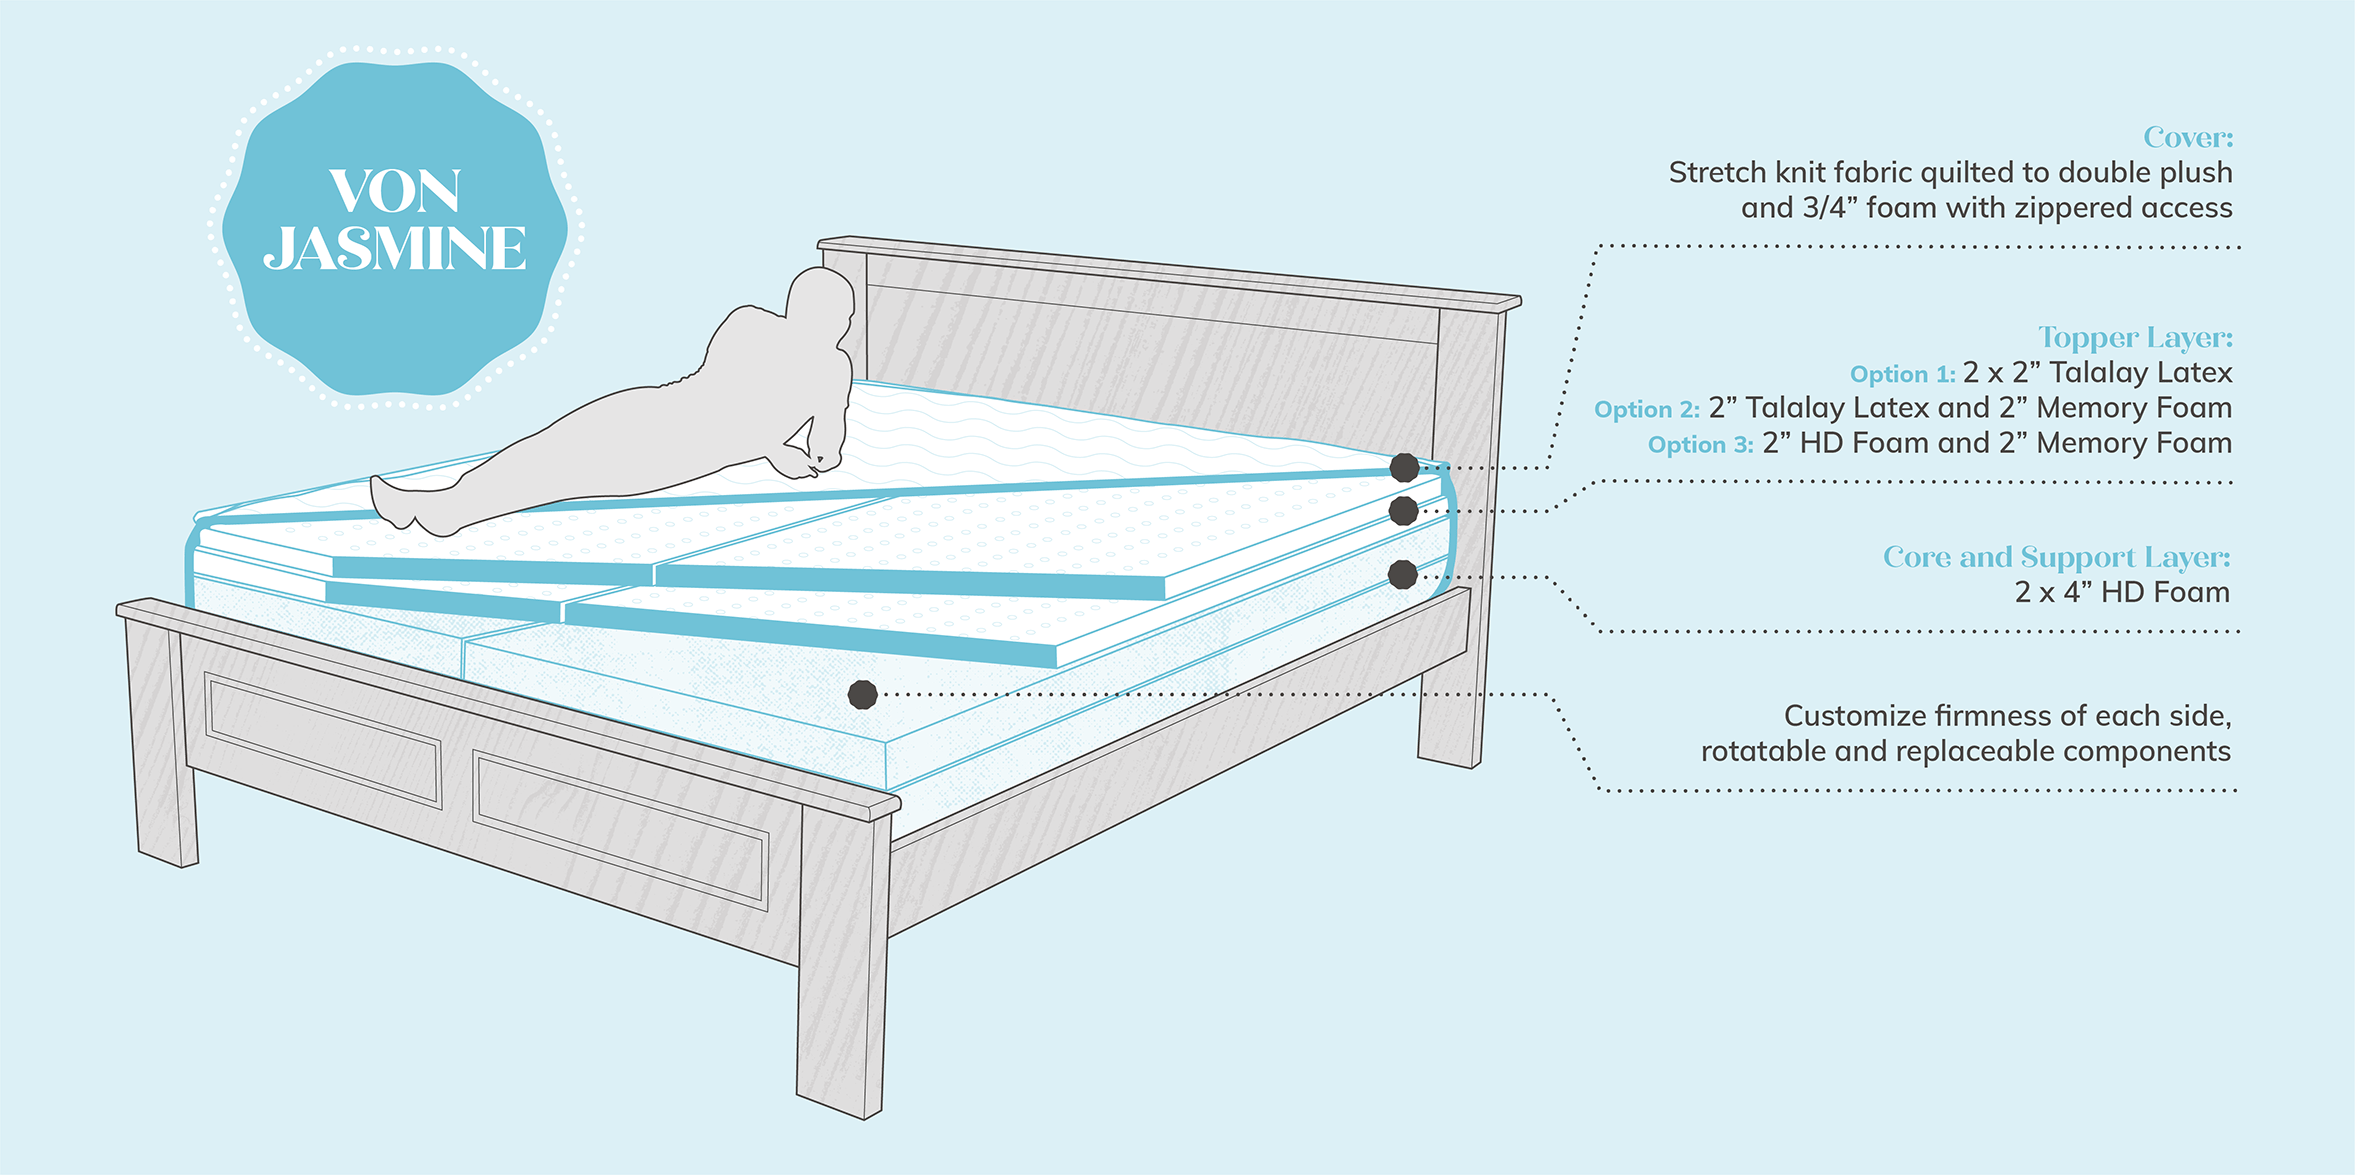 Hybrid Mattress Diagram - Von Jasmine